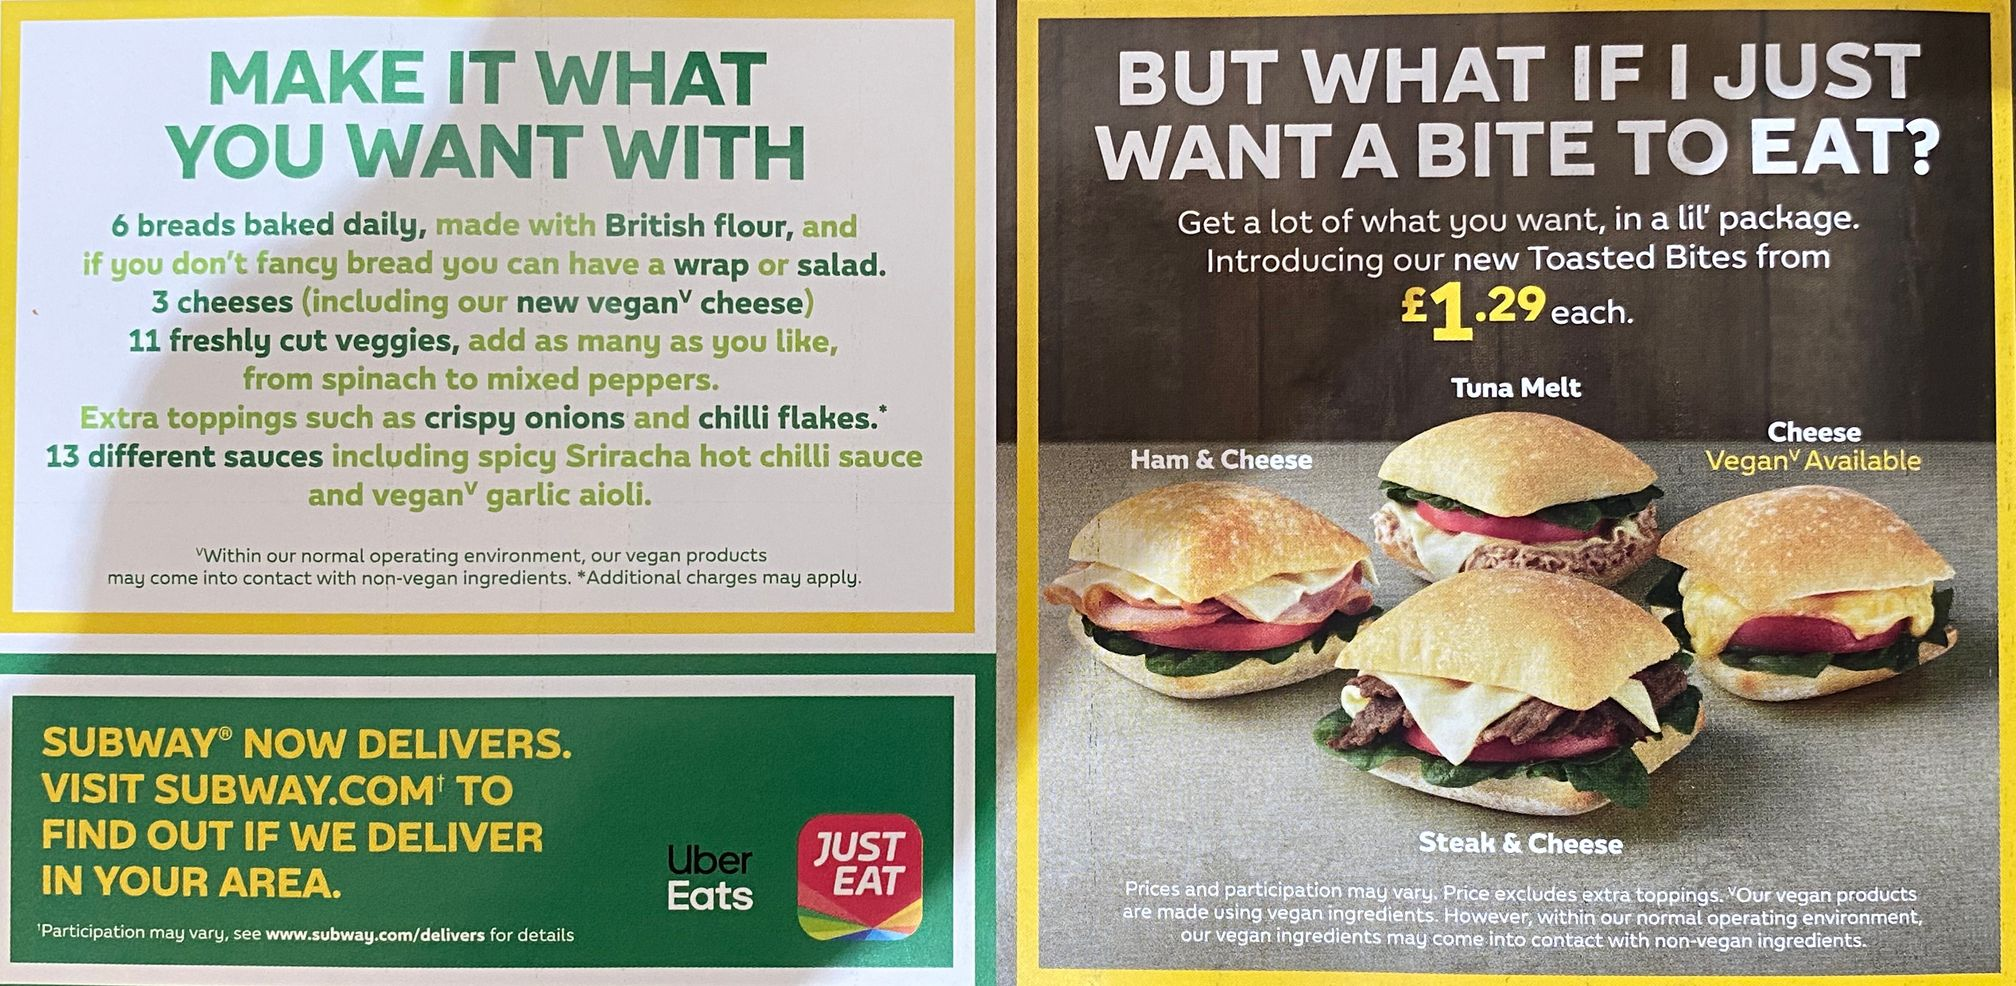 Subway Toasted Bites